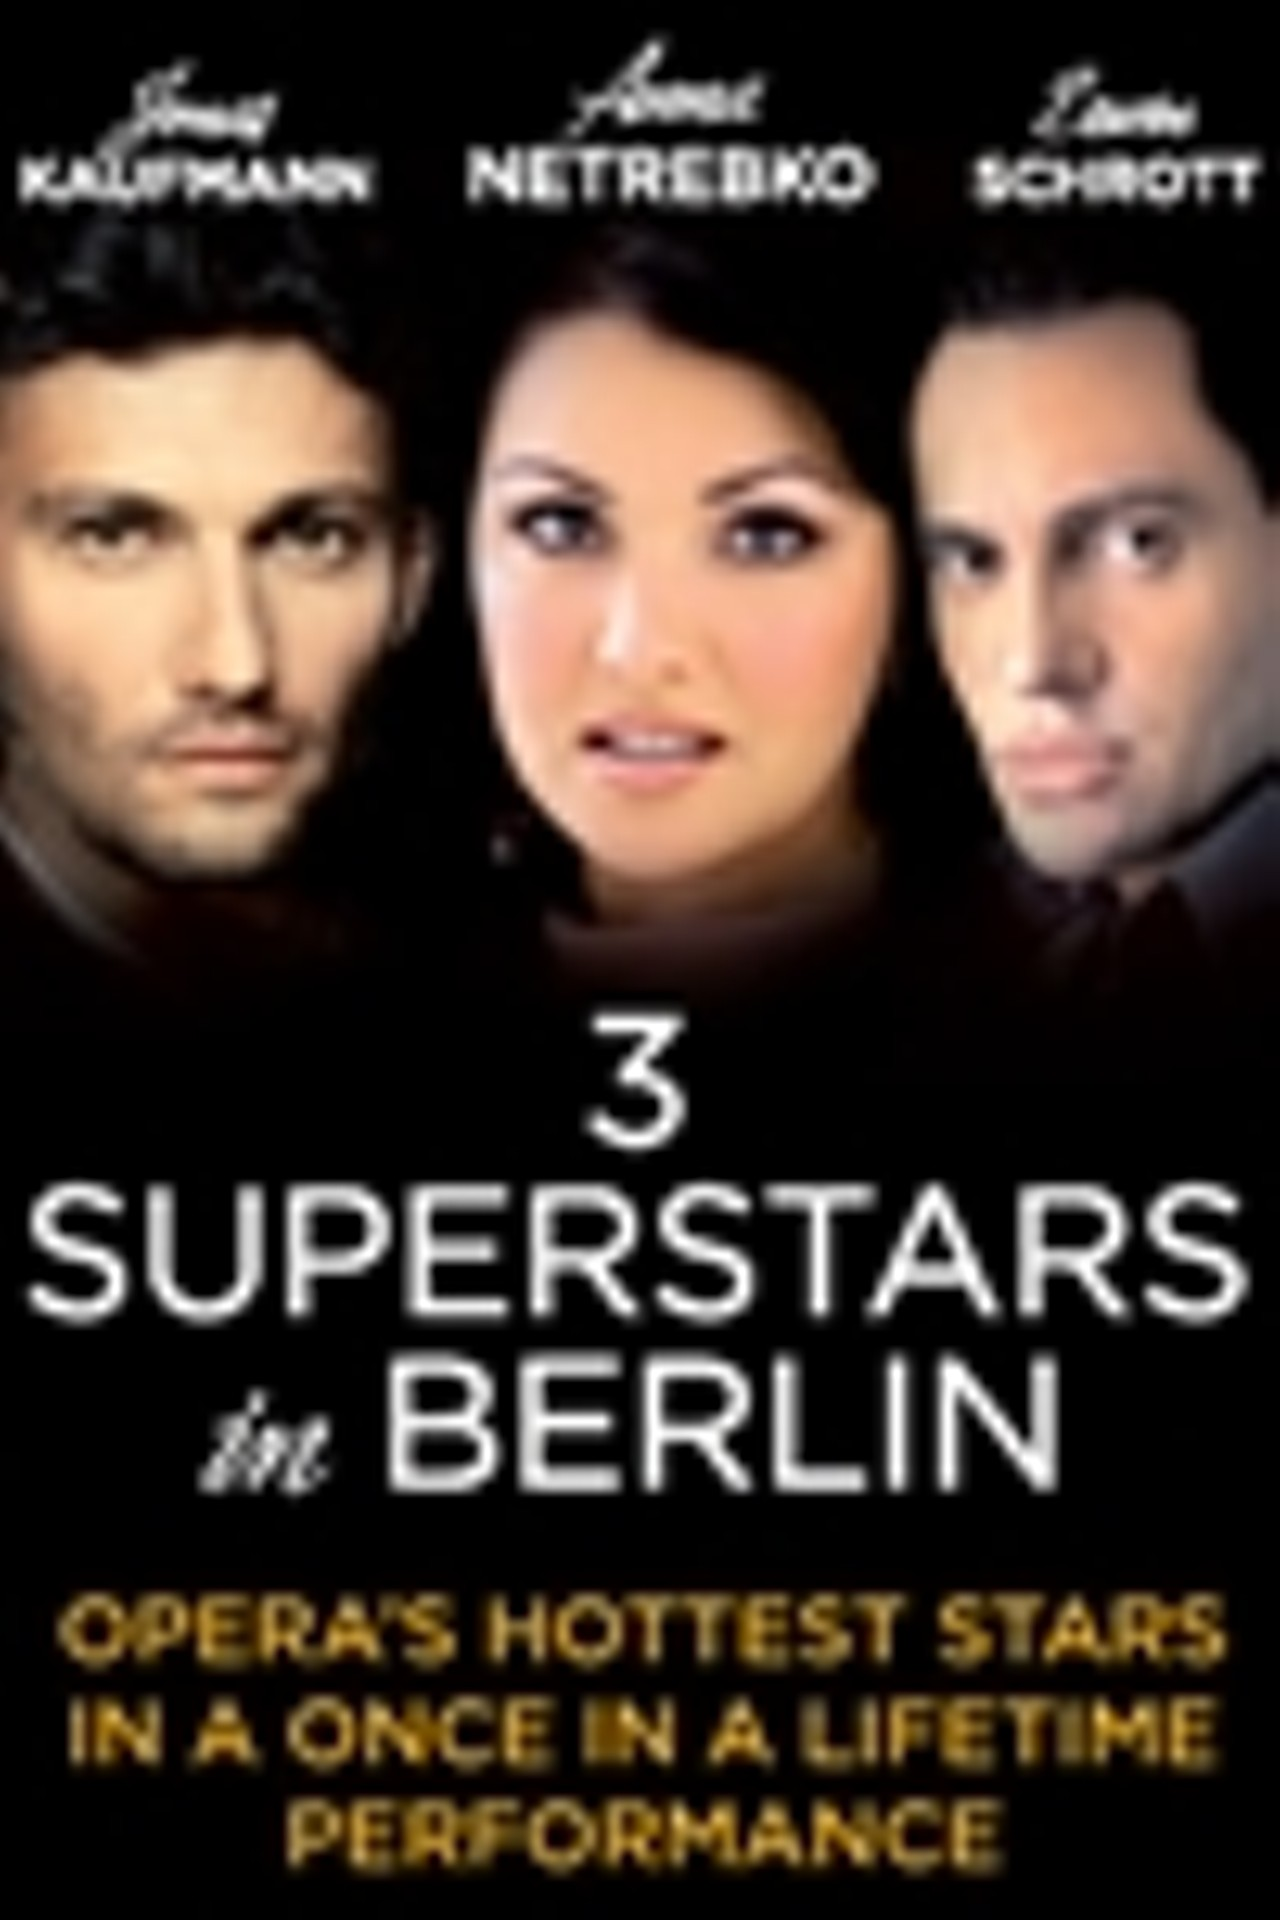 3 superstars in berlin